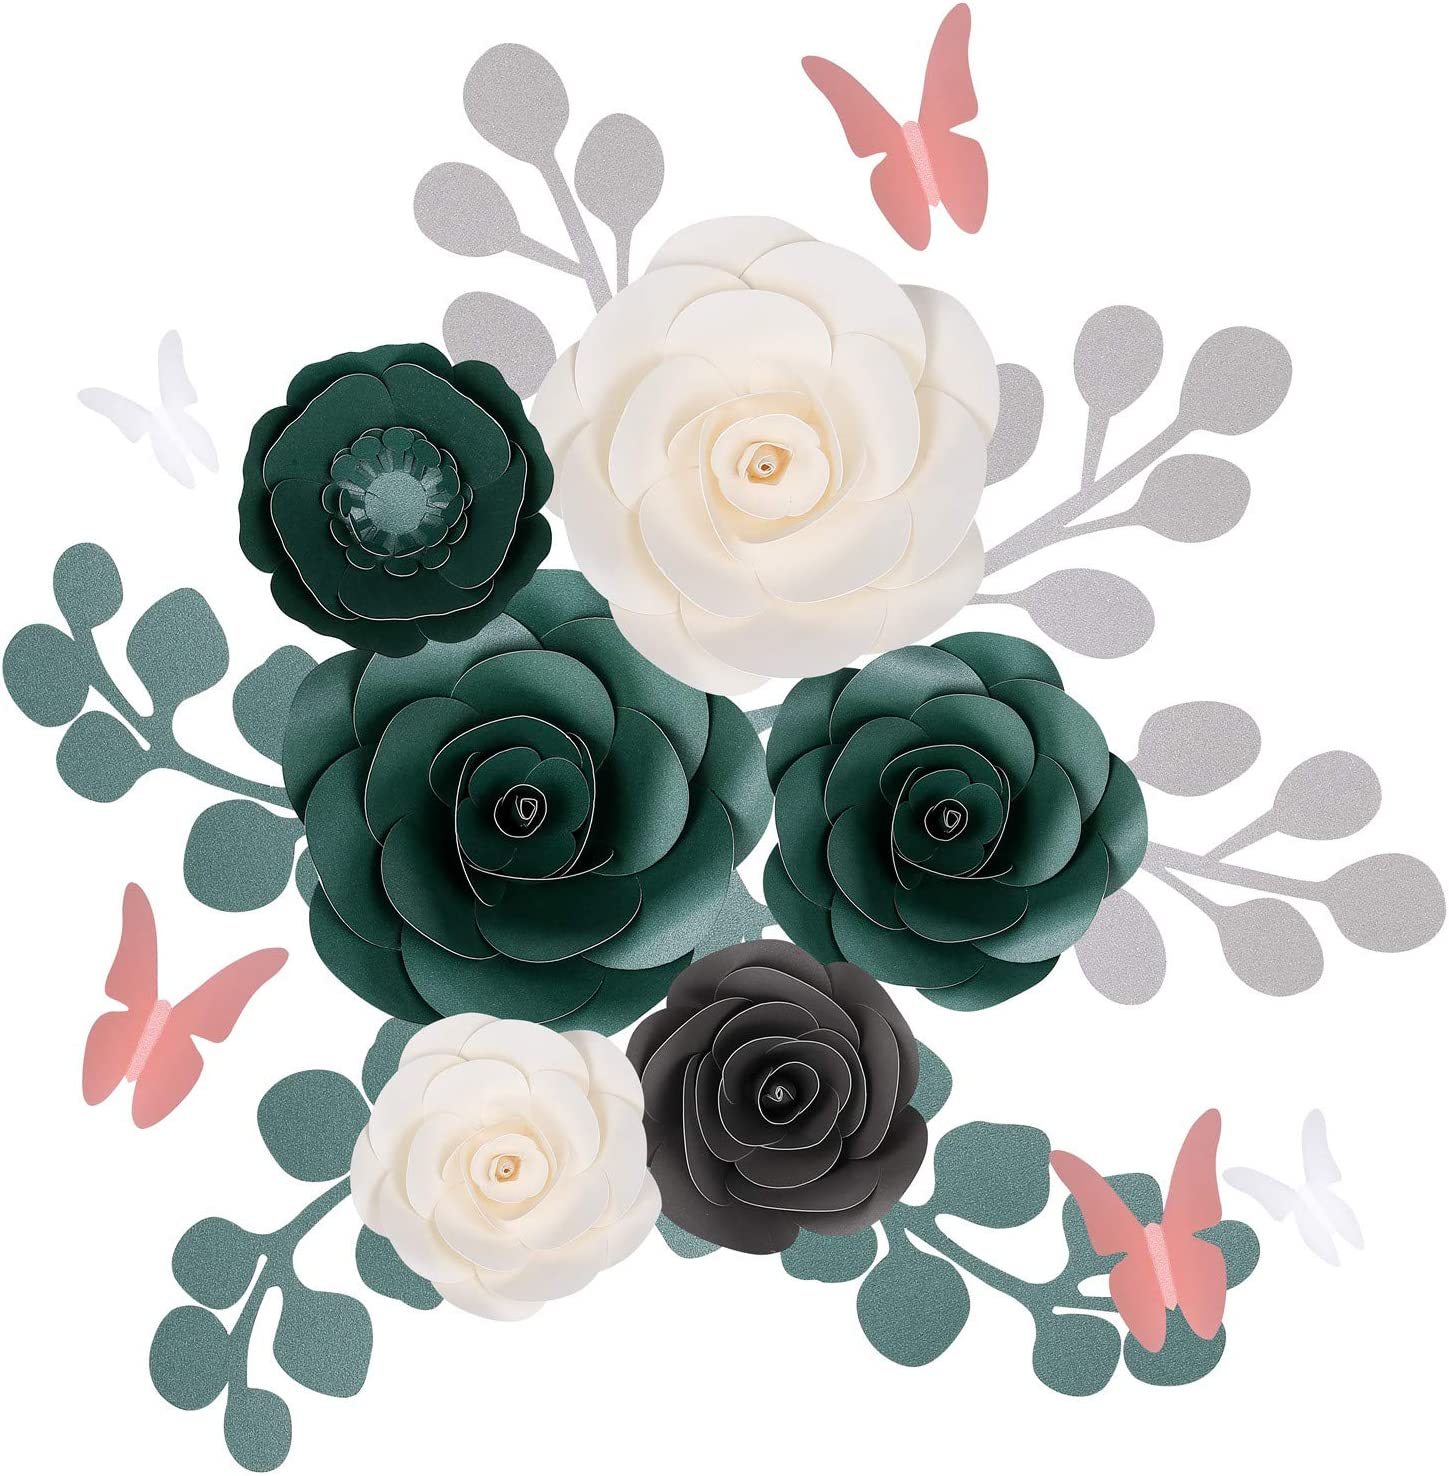 Fonder Mols Large 3D Paper Flowers Decorations for Wall (Eucalyptus Green & White, Set of 17), Wedding, Bridal Shower, Baby Shower, Nursery Decor, Centerpieces, Paper Roses Backdrop, Party, NO DIY